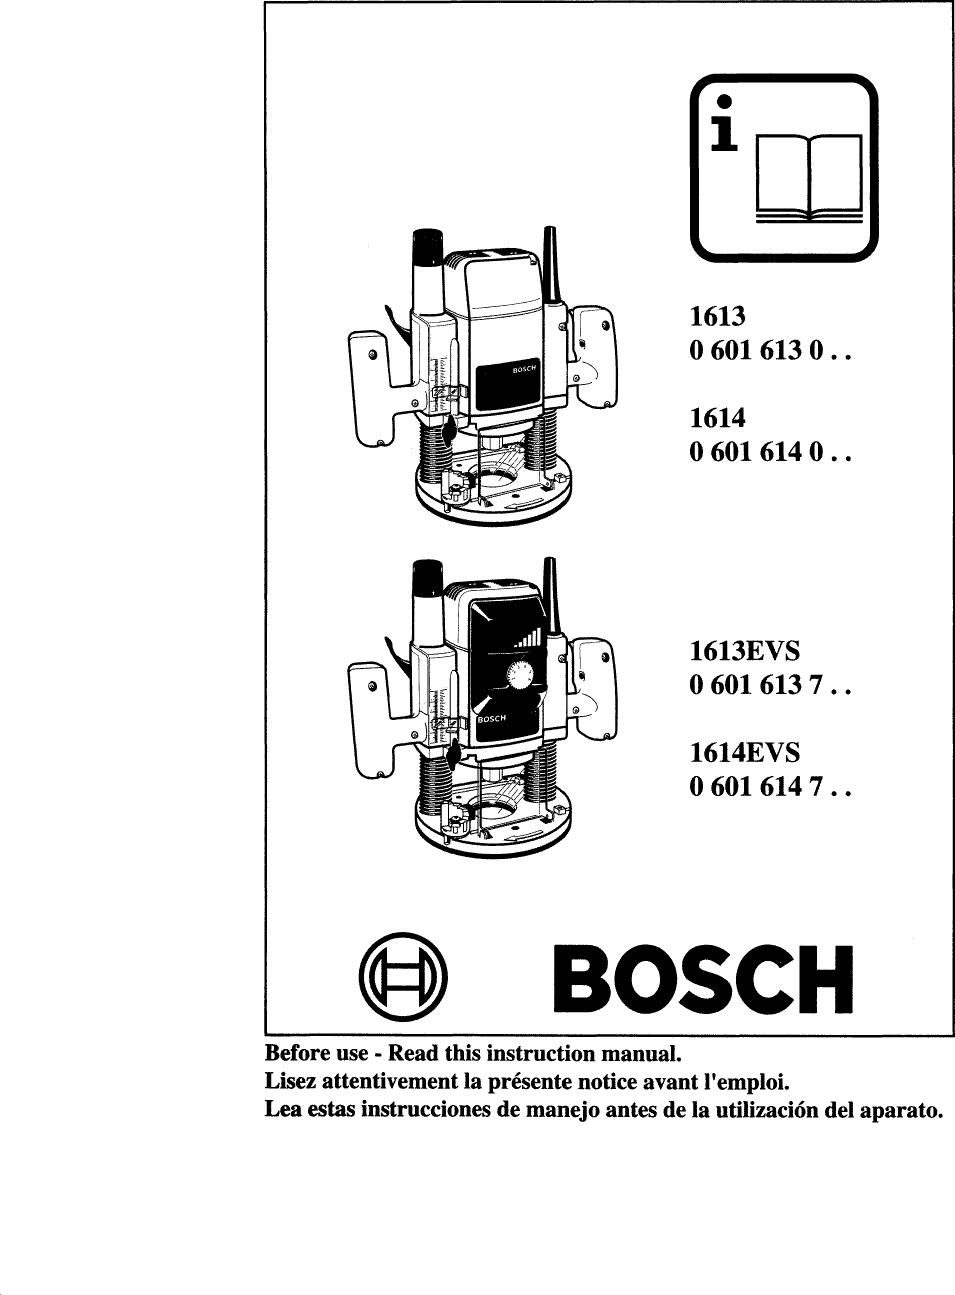 Bosch 1613EVS User Manual 2 HP PLUNGE ROUTER Manuals And